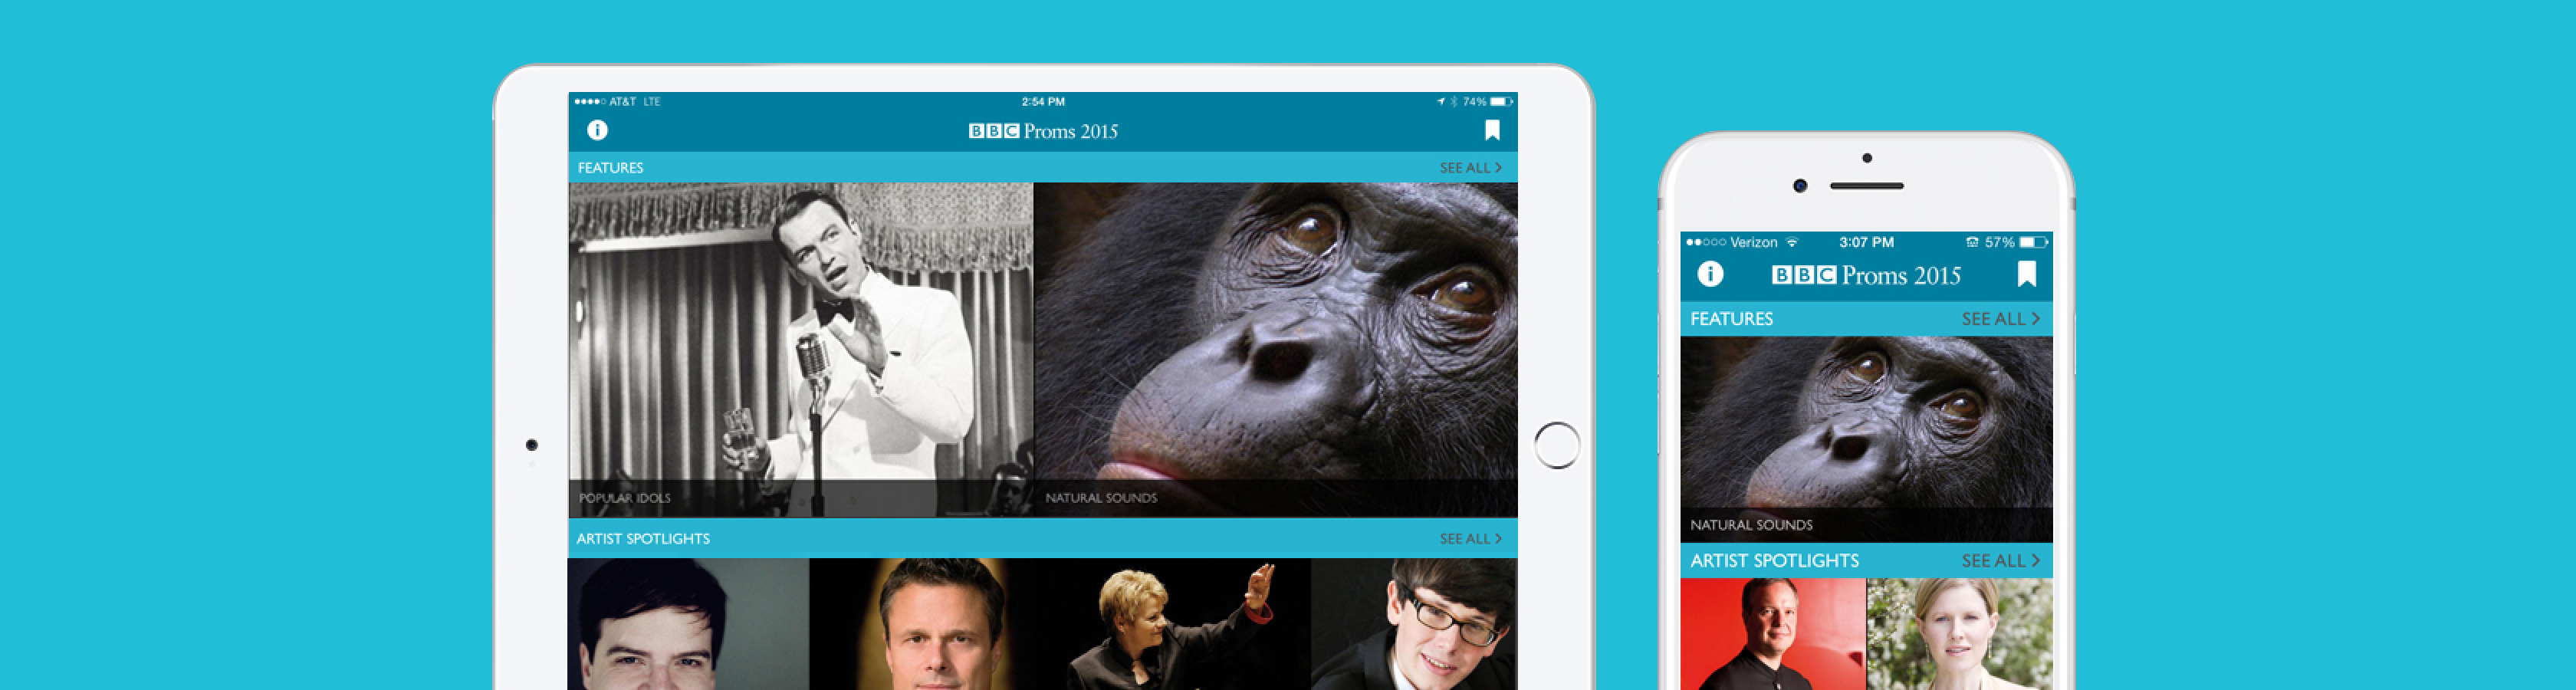 BBC Proms screens on tablet and iPhone